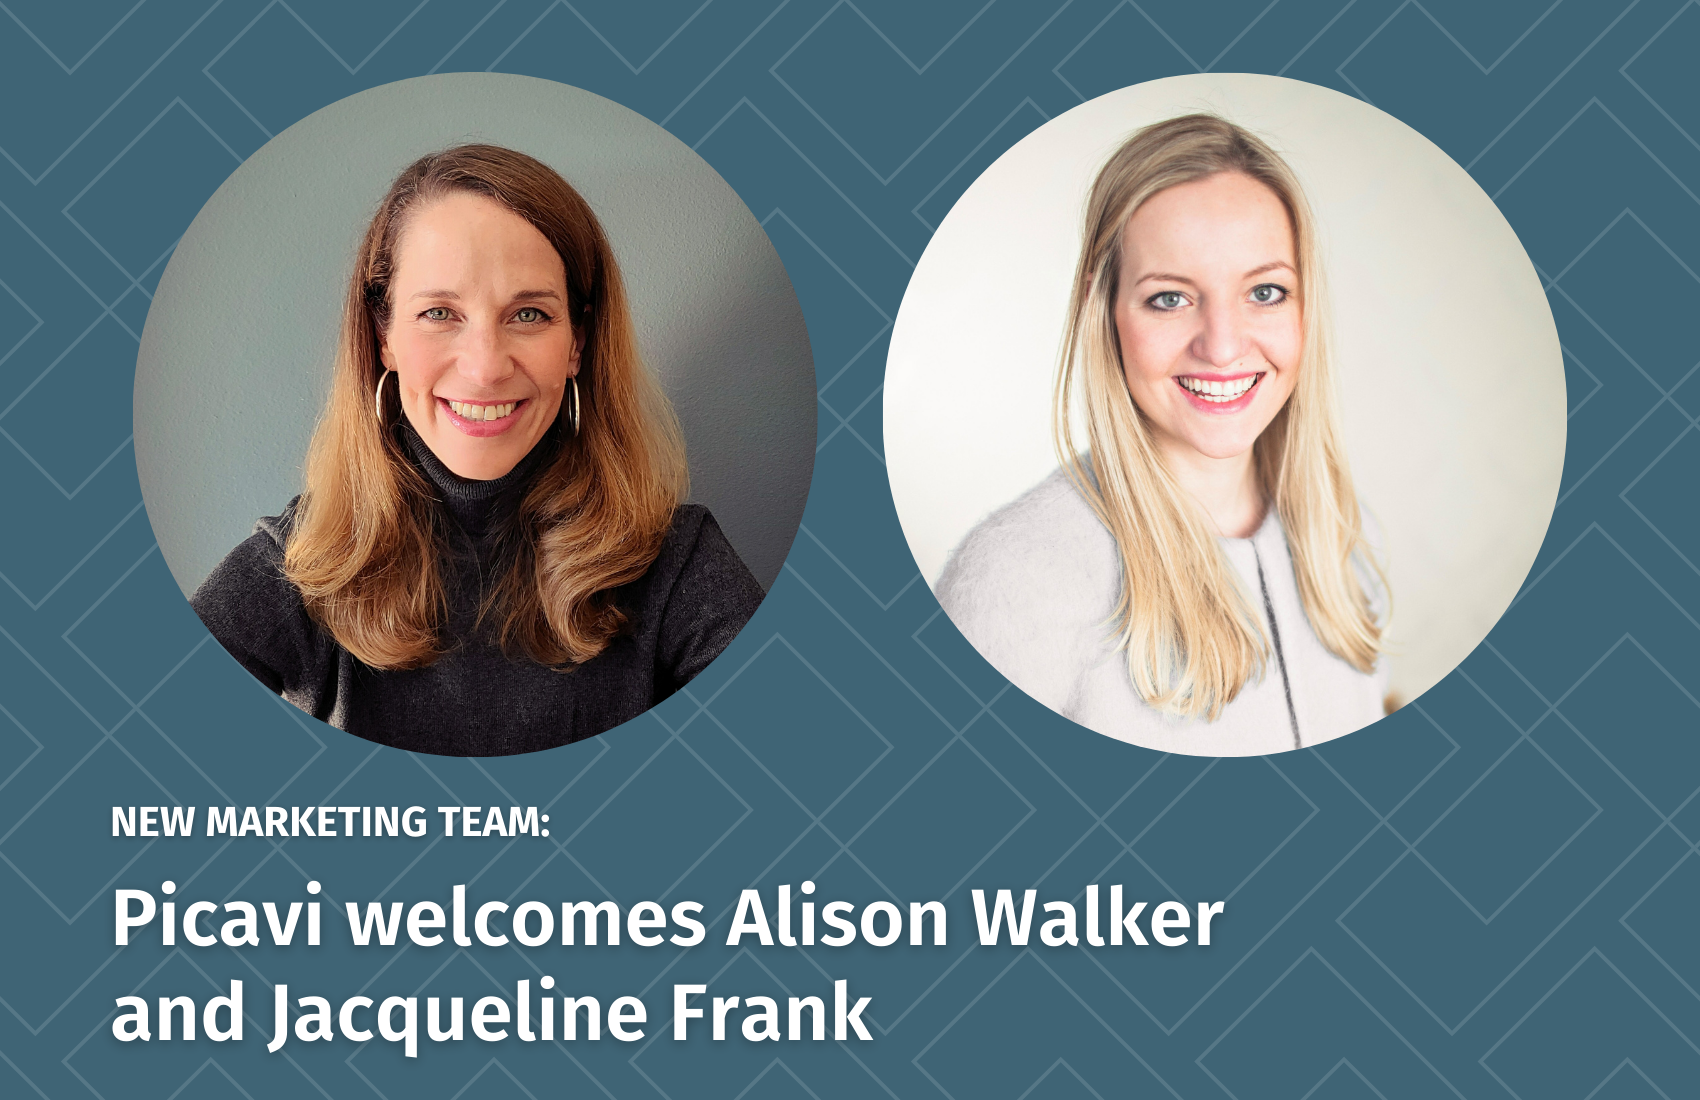 Alison Walker and Jacqueline Frank - New Marketing Team at Picavi